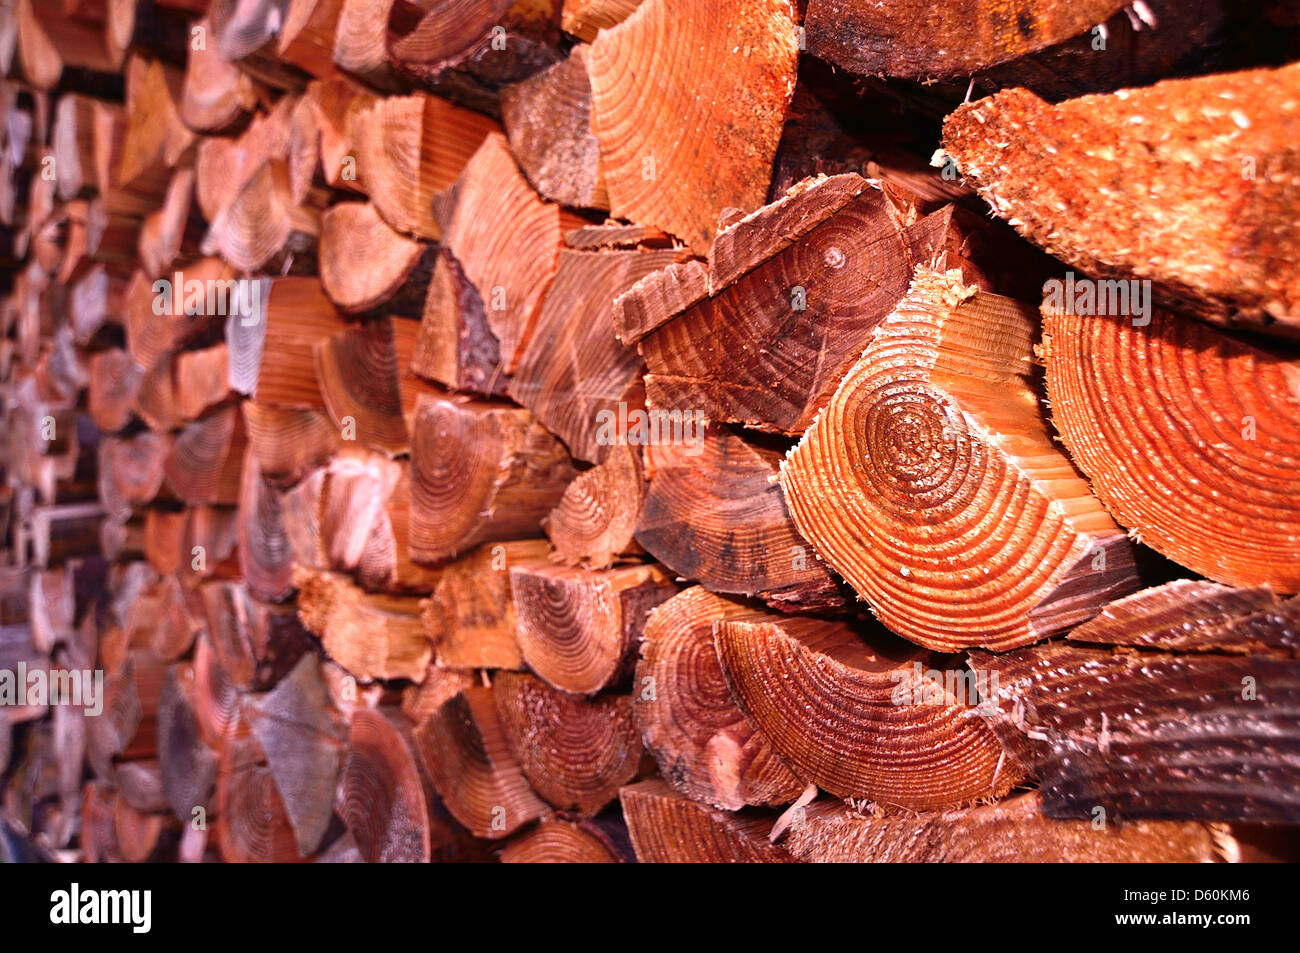 Close up with selective focus of a pile of chopped firewood or logs - Stock Image